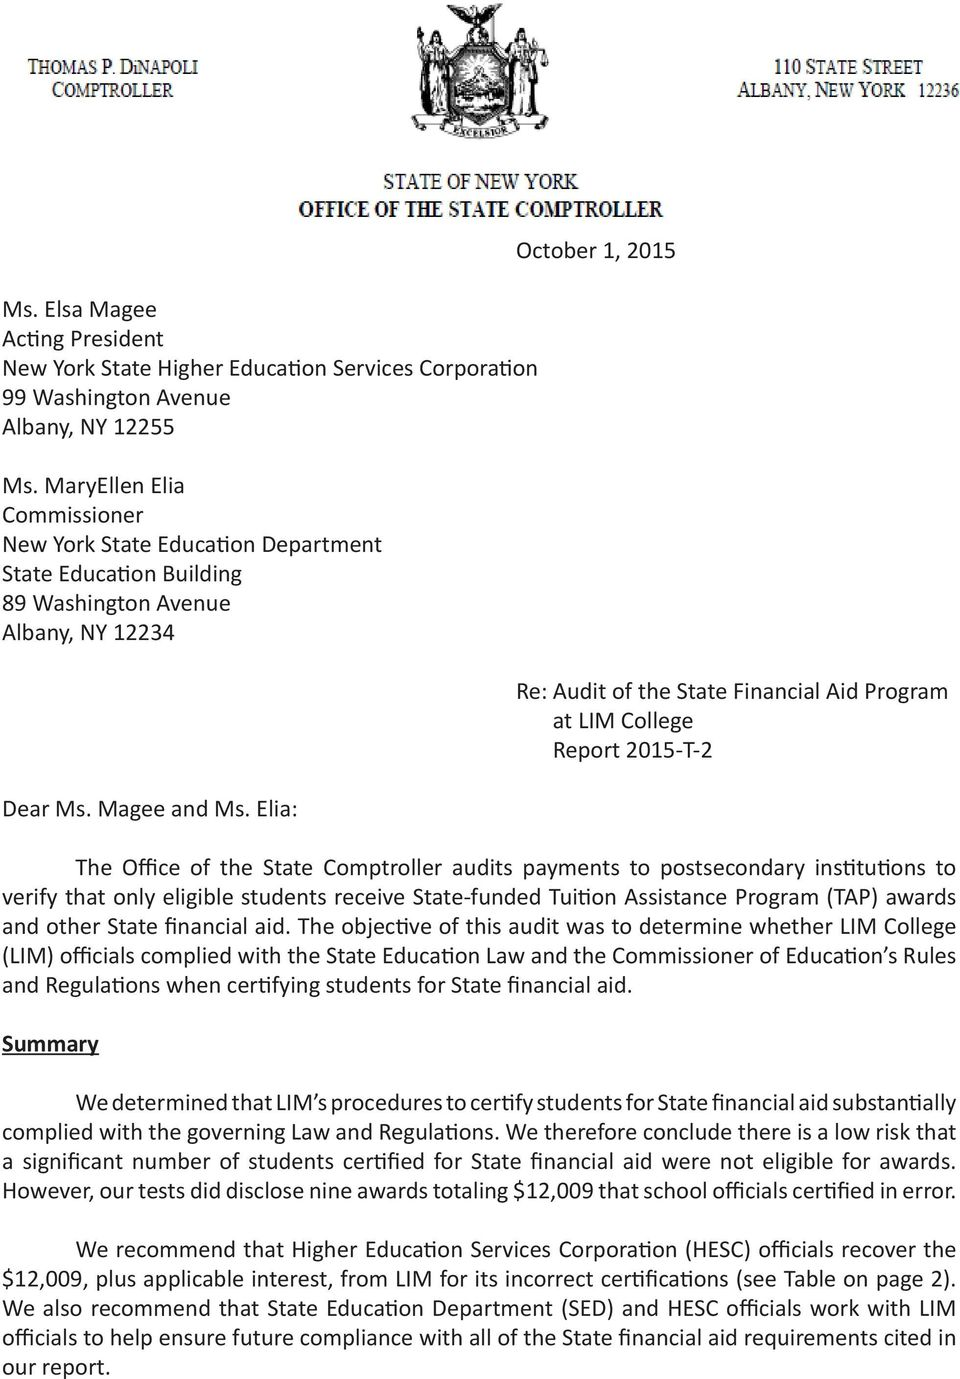 Elia: October 1, 2015 Re: Audit of the State Financial Aid Program at LIM College Report 2015-T-2 The Office of the State Comptroller audits payments to postsecondary institutions to verify that only